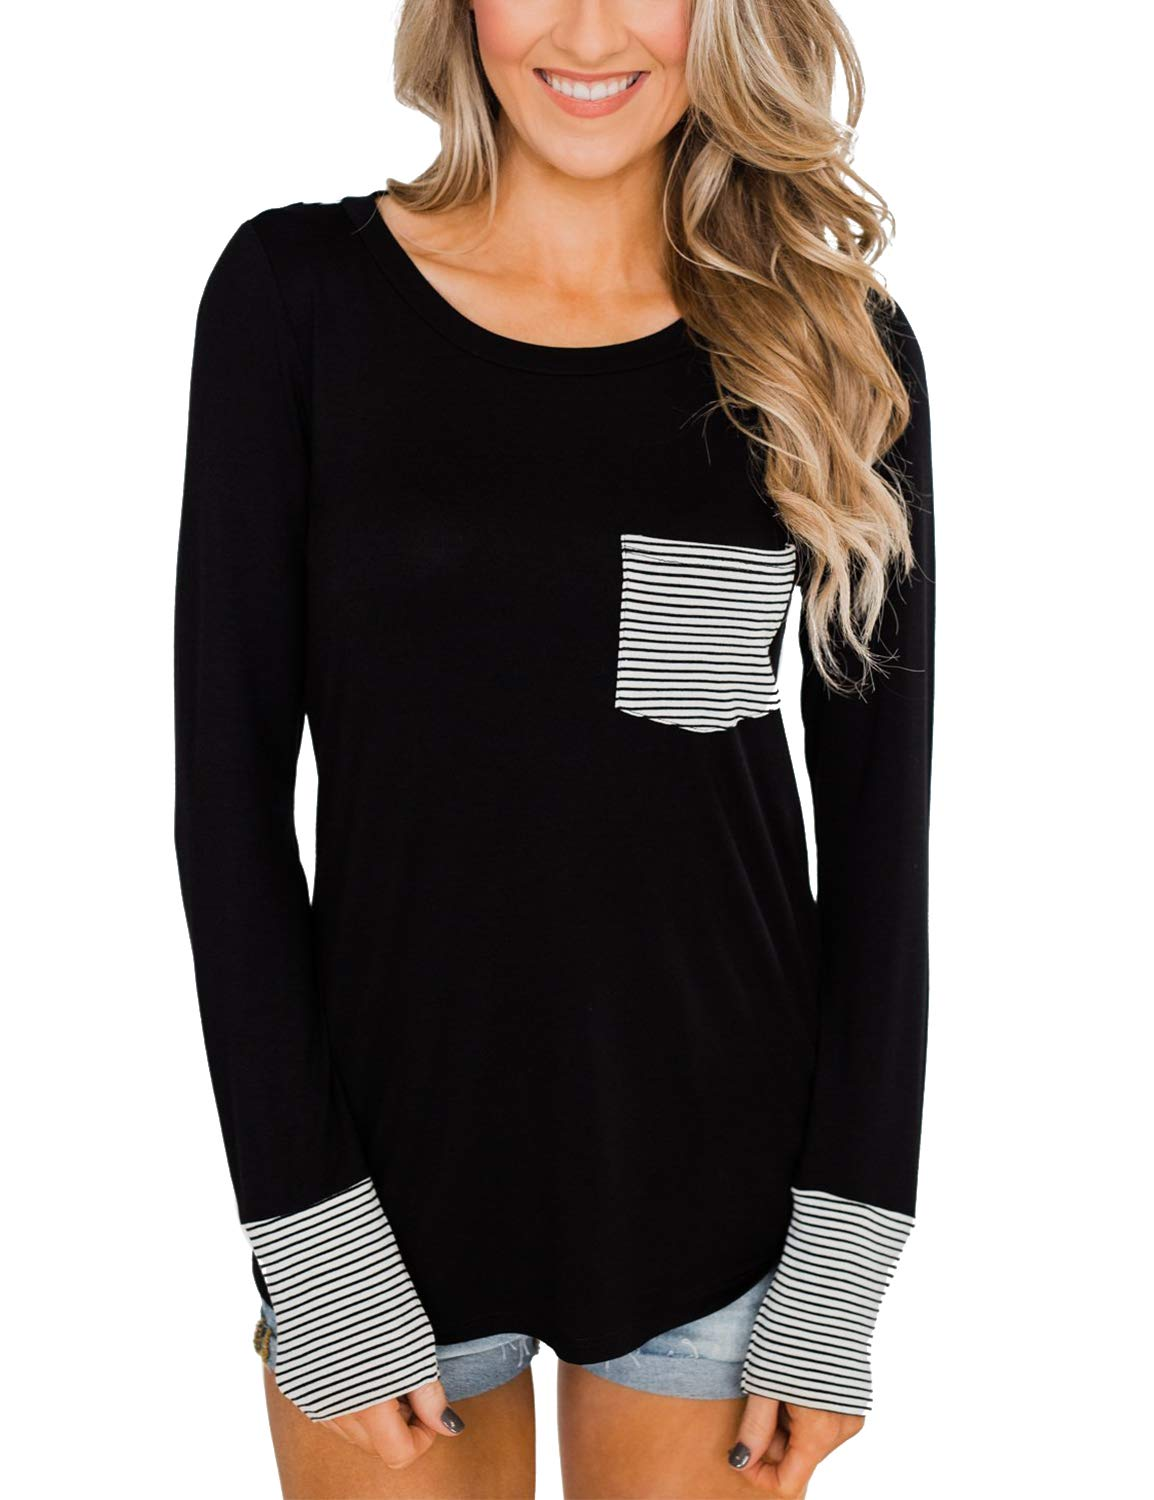 BMJL Women's Casual Crew Neck Blouse Striped Color Block Shirt with Pocket Black